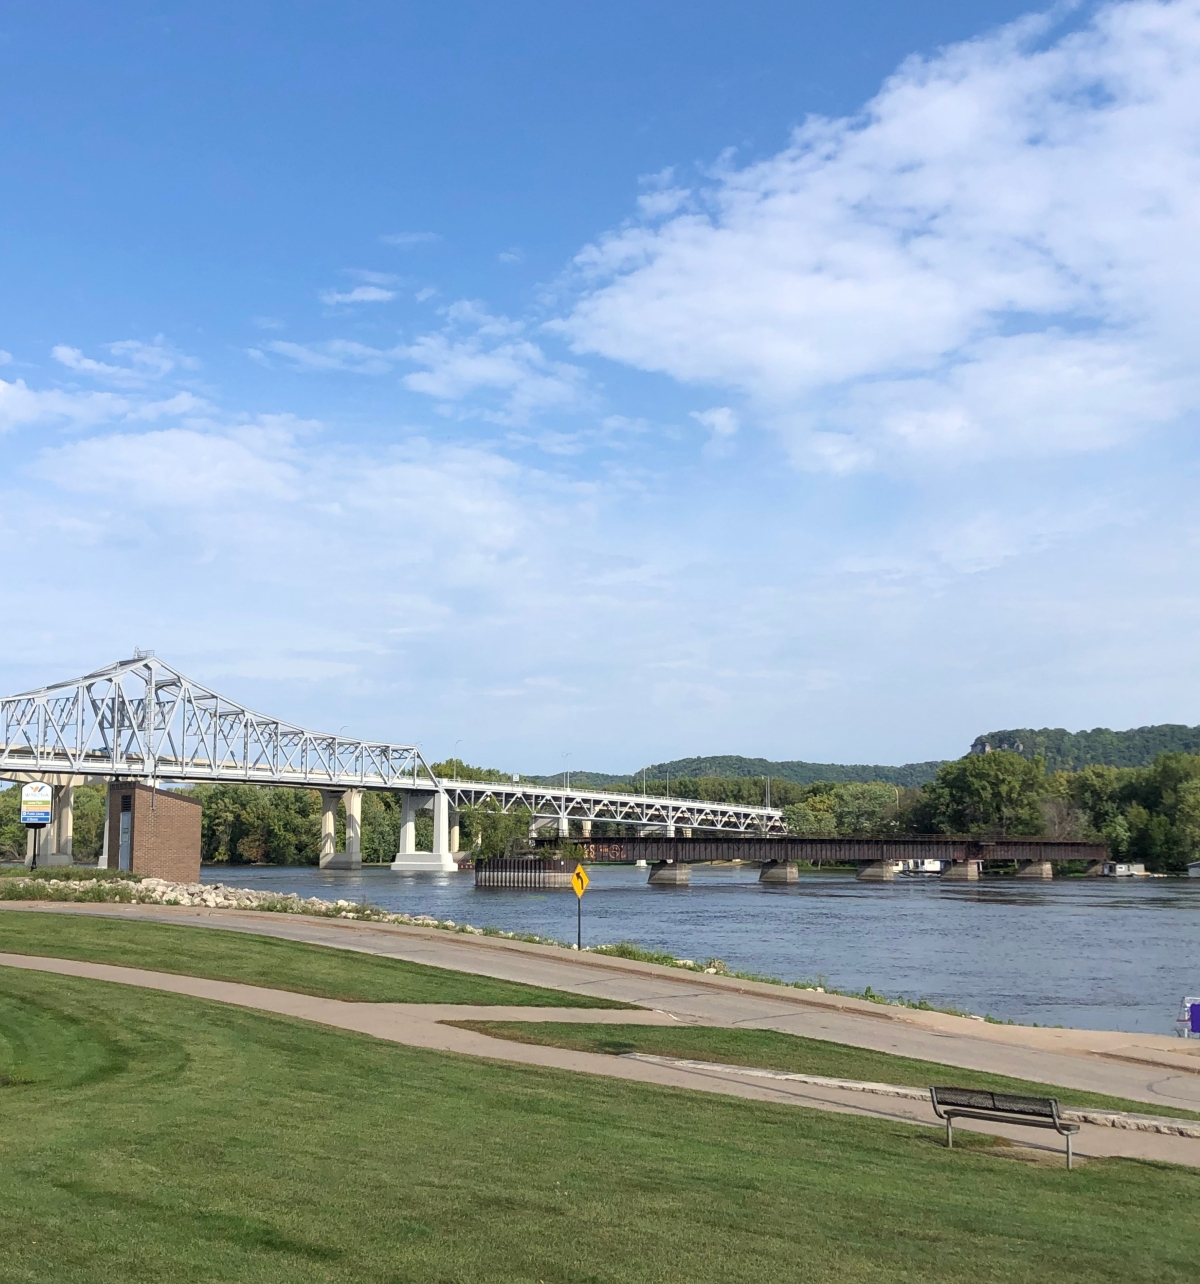 Mississippi River at Winona, MN